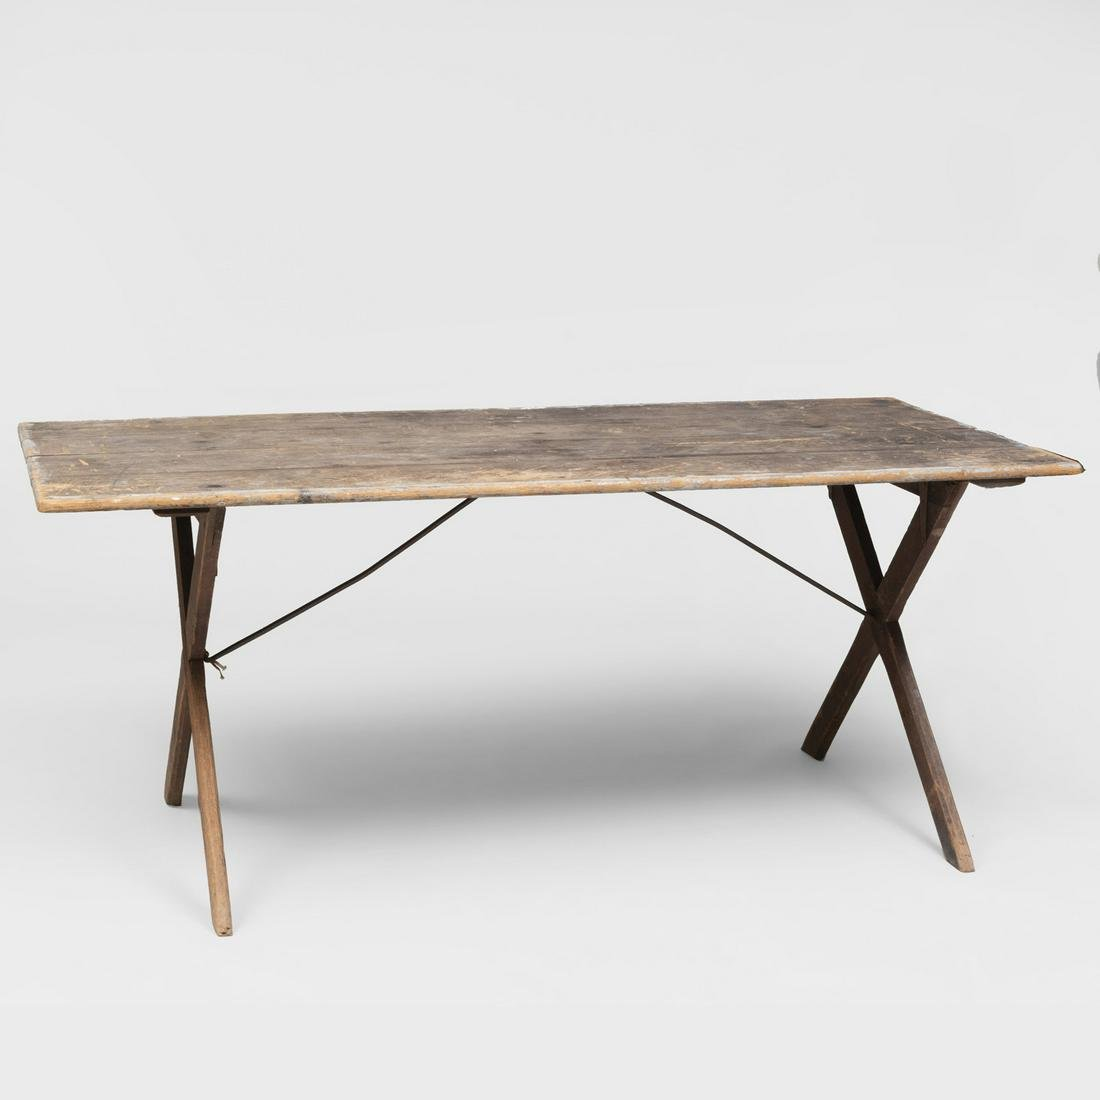 Pine Sawbuck Table with Metal Supports